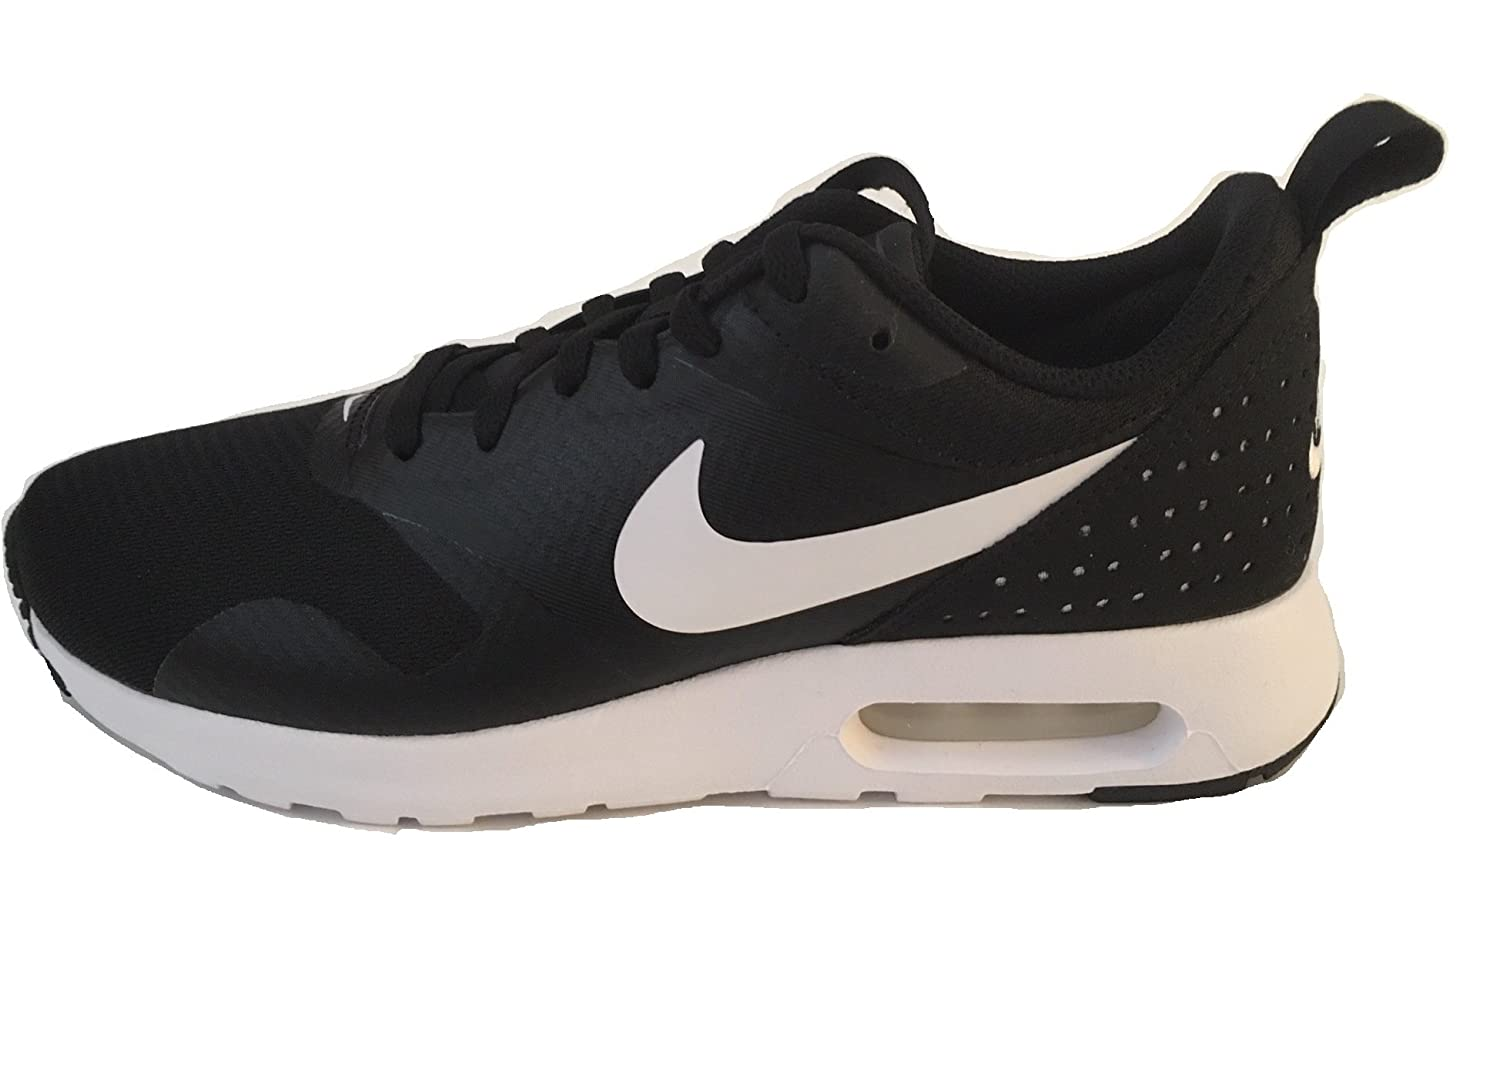 sale retailer 9c6a4 e8b6e Amazon.com   Nike Women s Air Max Tavas Running Shoes Black White 916791  001 (7.5 B(M) US)   Road Running